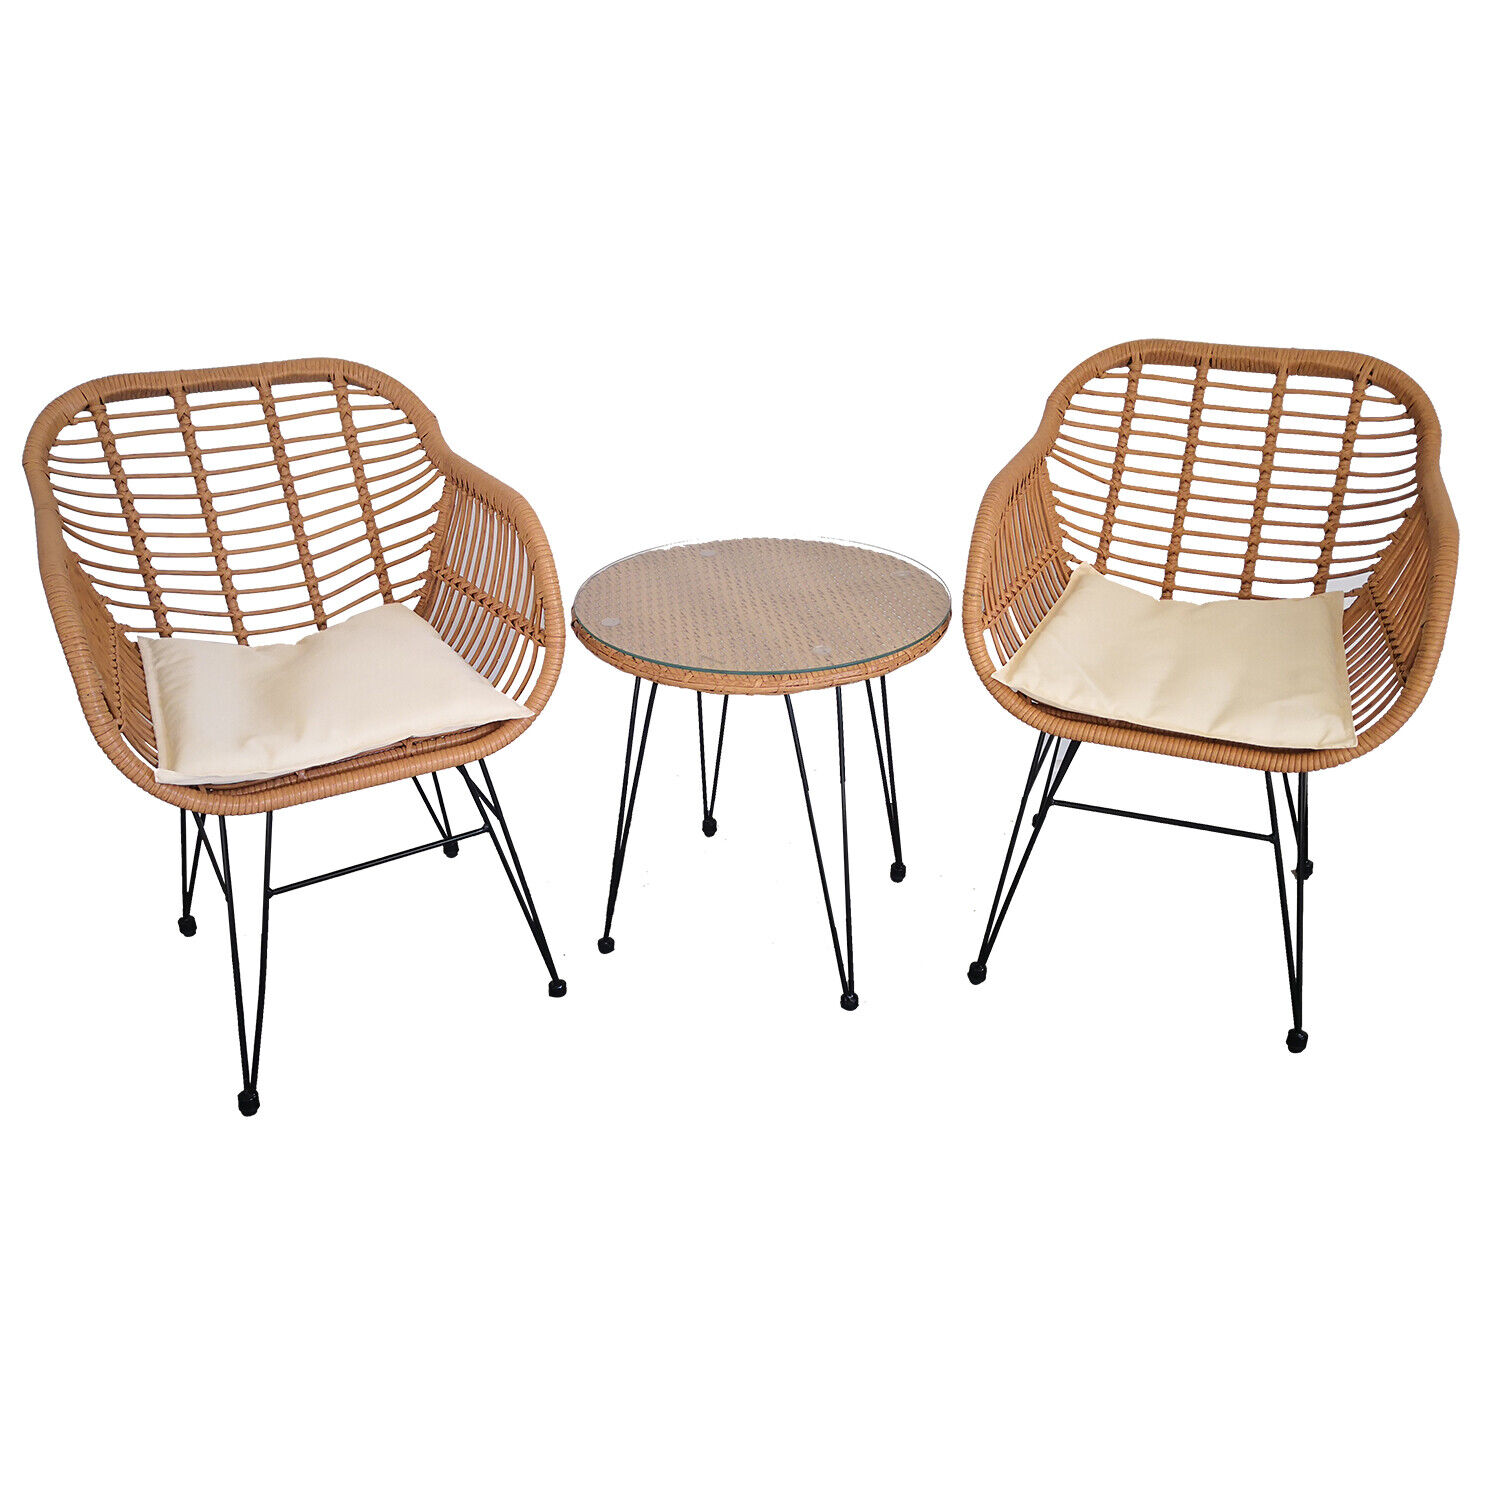 Garden Furniture - 3pc Lounge Set Outdoor Furniture Rattan Wicker Chair Table Garden Patio Balcony